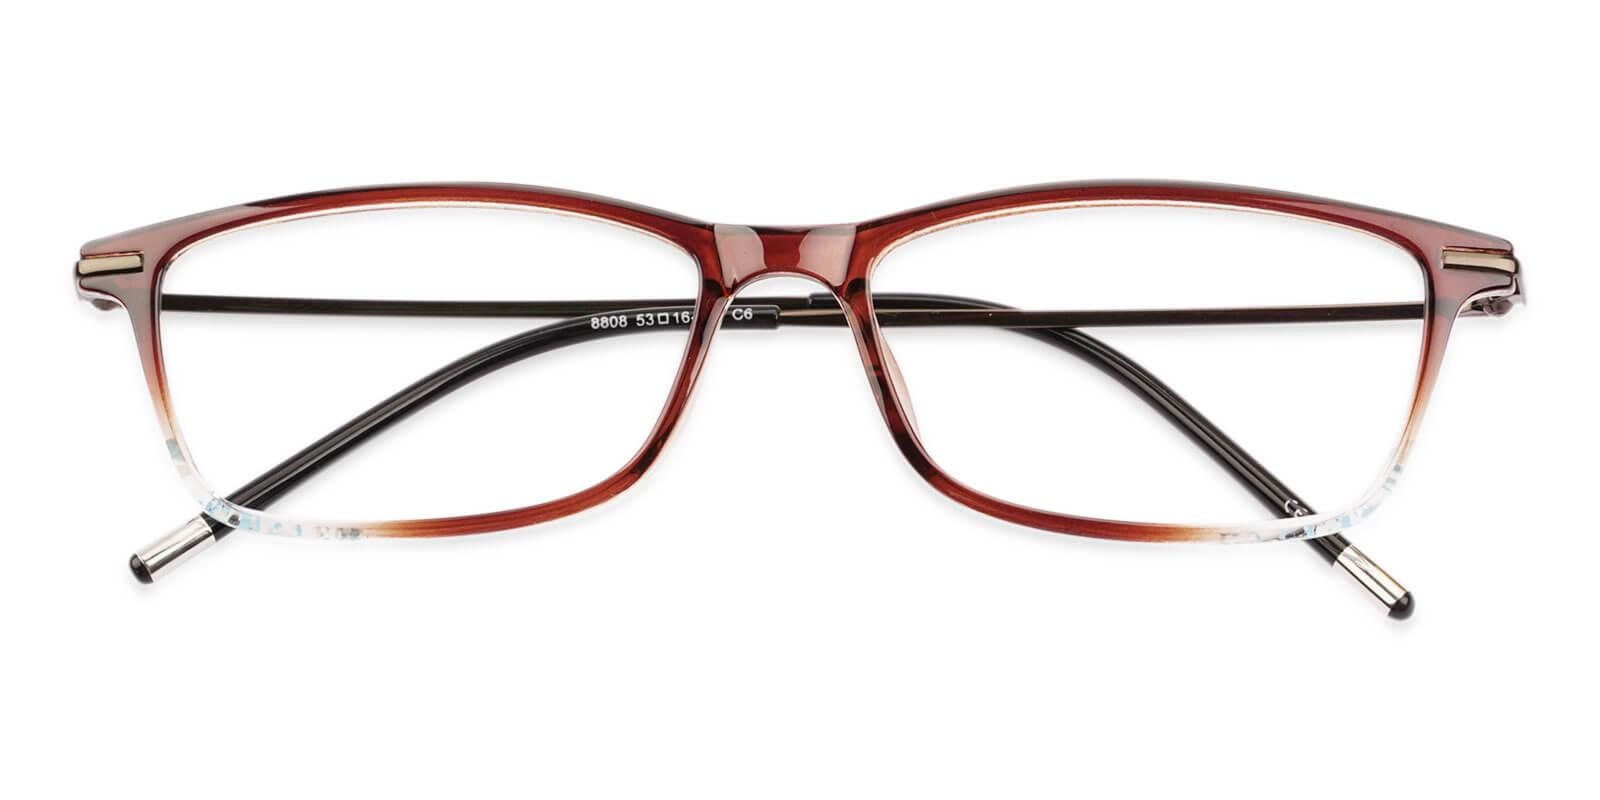 Radcliffe Brown TR Lightweight , UniversalBridgeFit , Eyeglasses Frames from ABBE Glasses